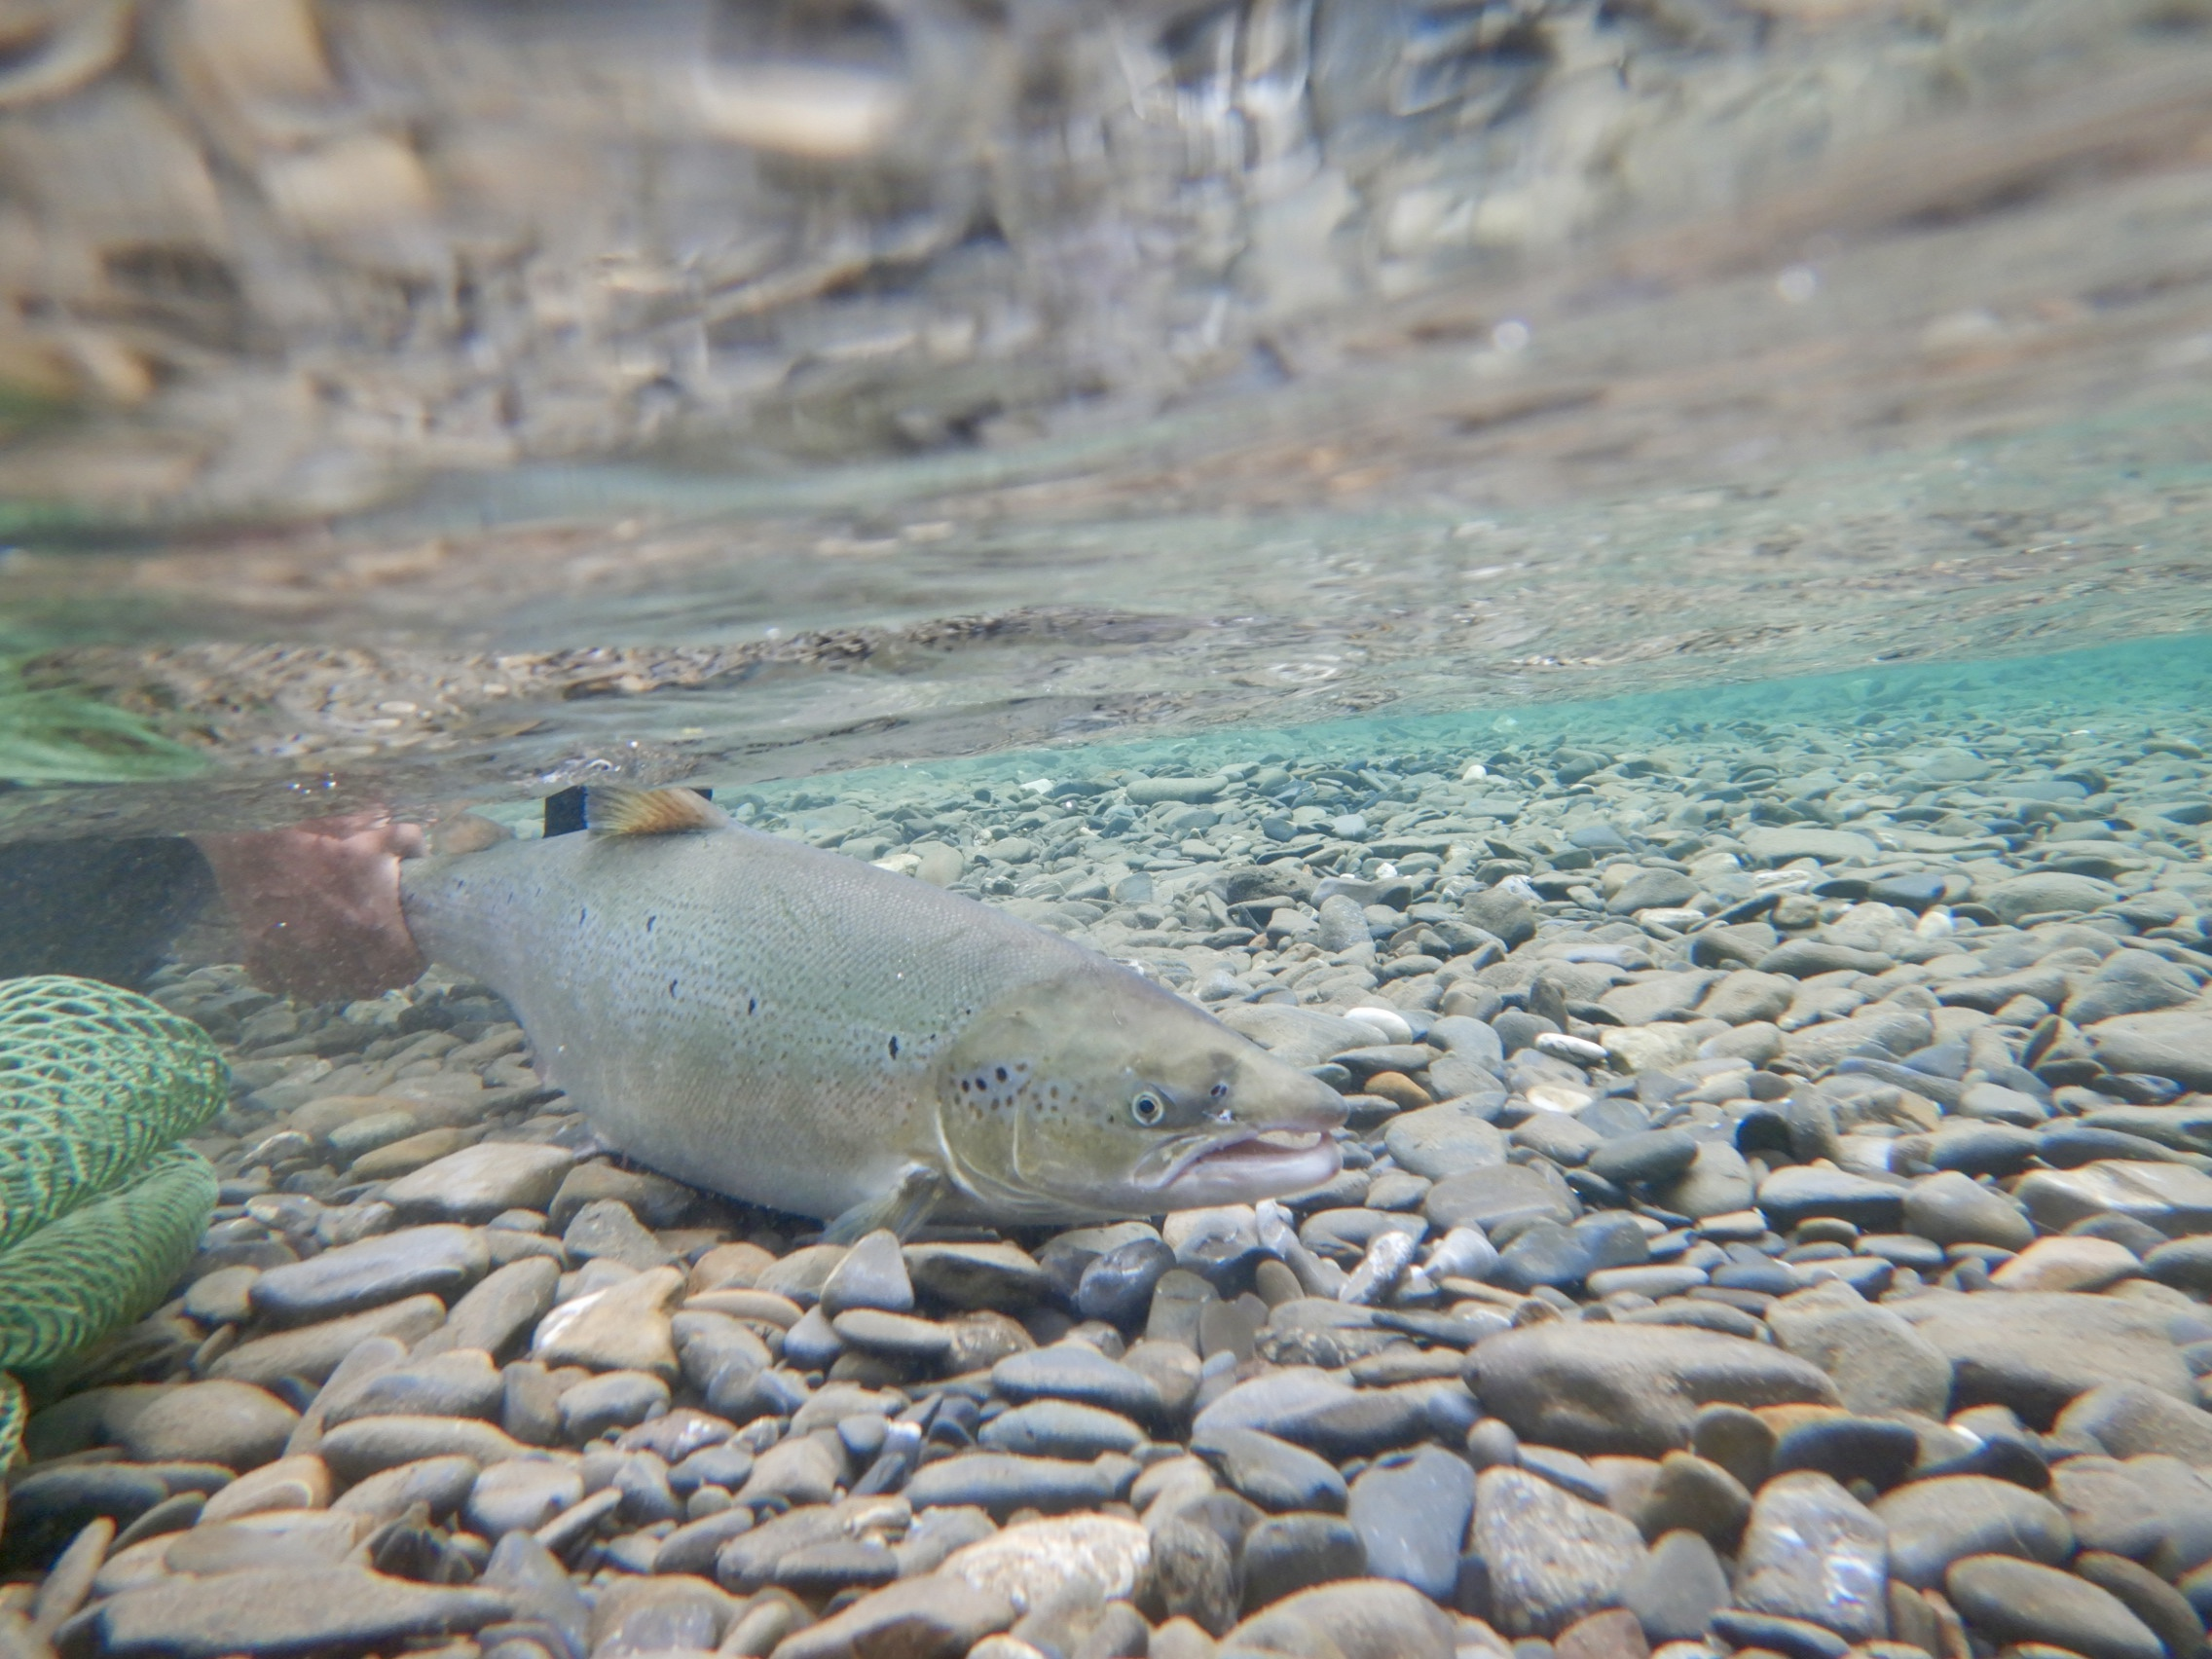 Stunning photo of Steeve Bujold's salmon under water! What a beautiful release!